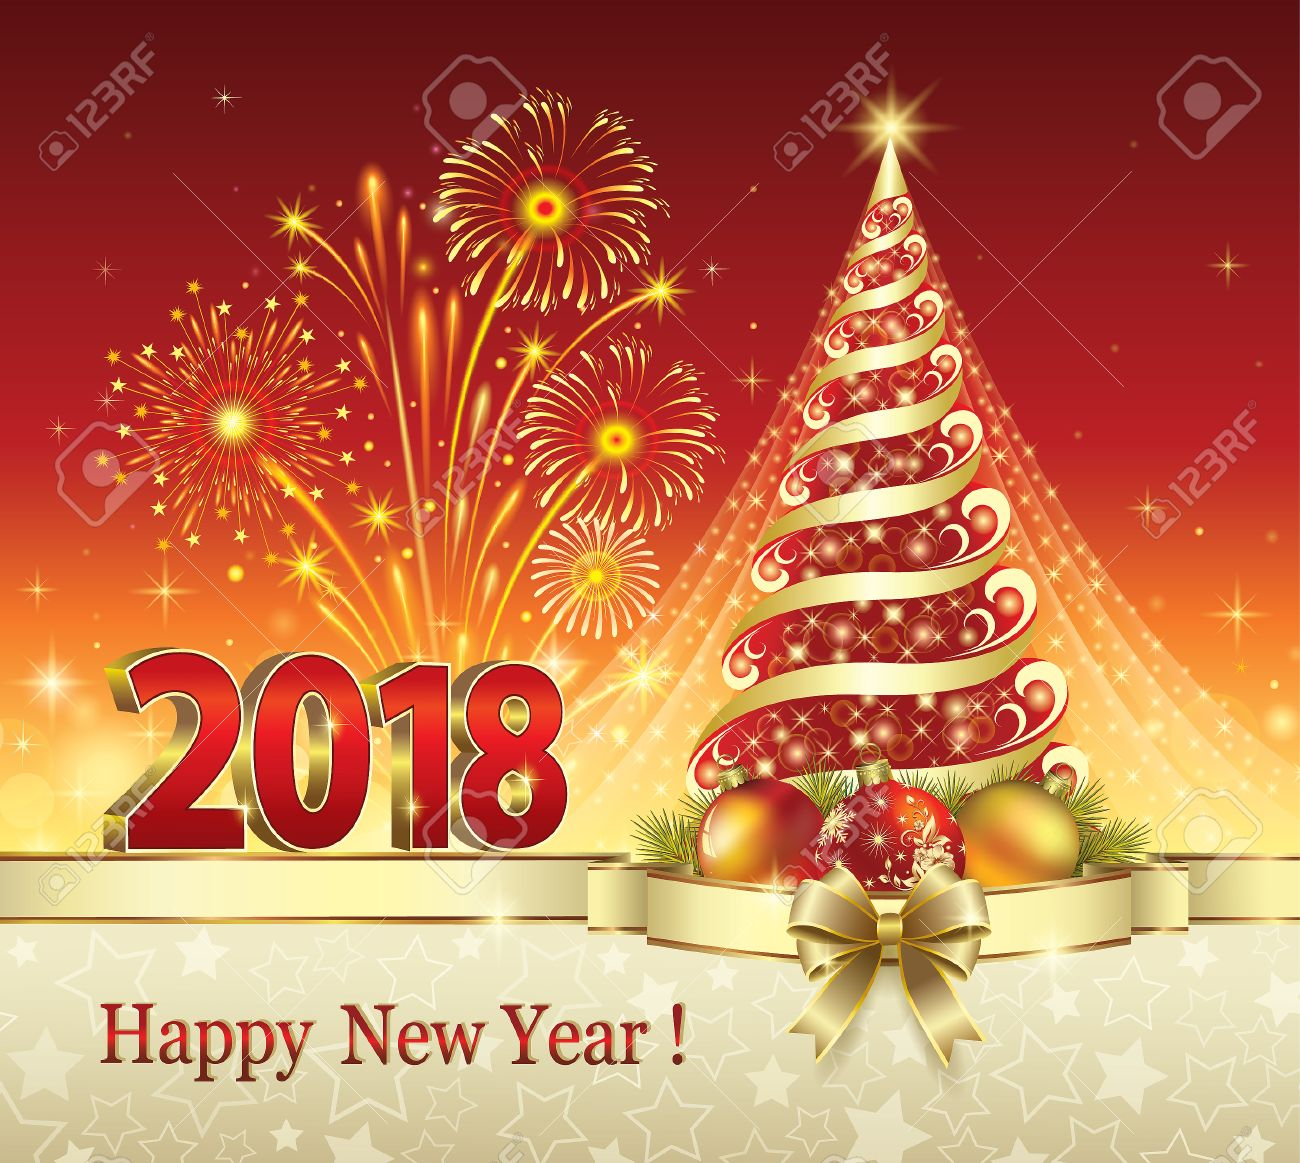 Postcard Happy New Year 2018 With A Christmas Tree Royalty Free ...